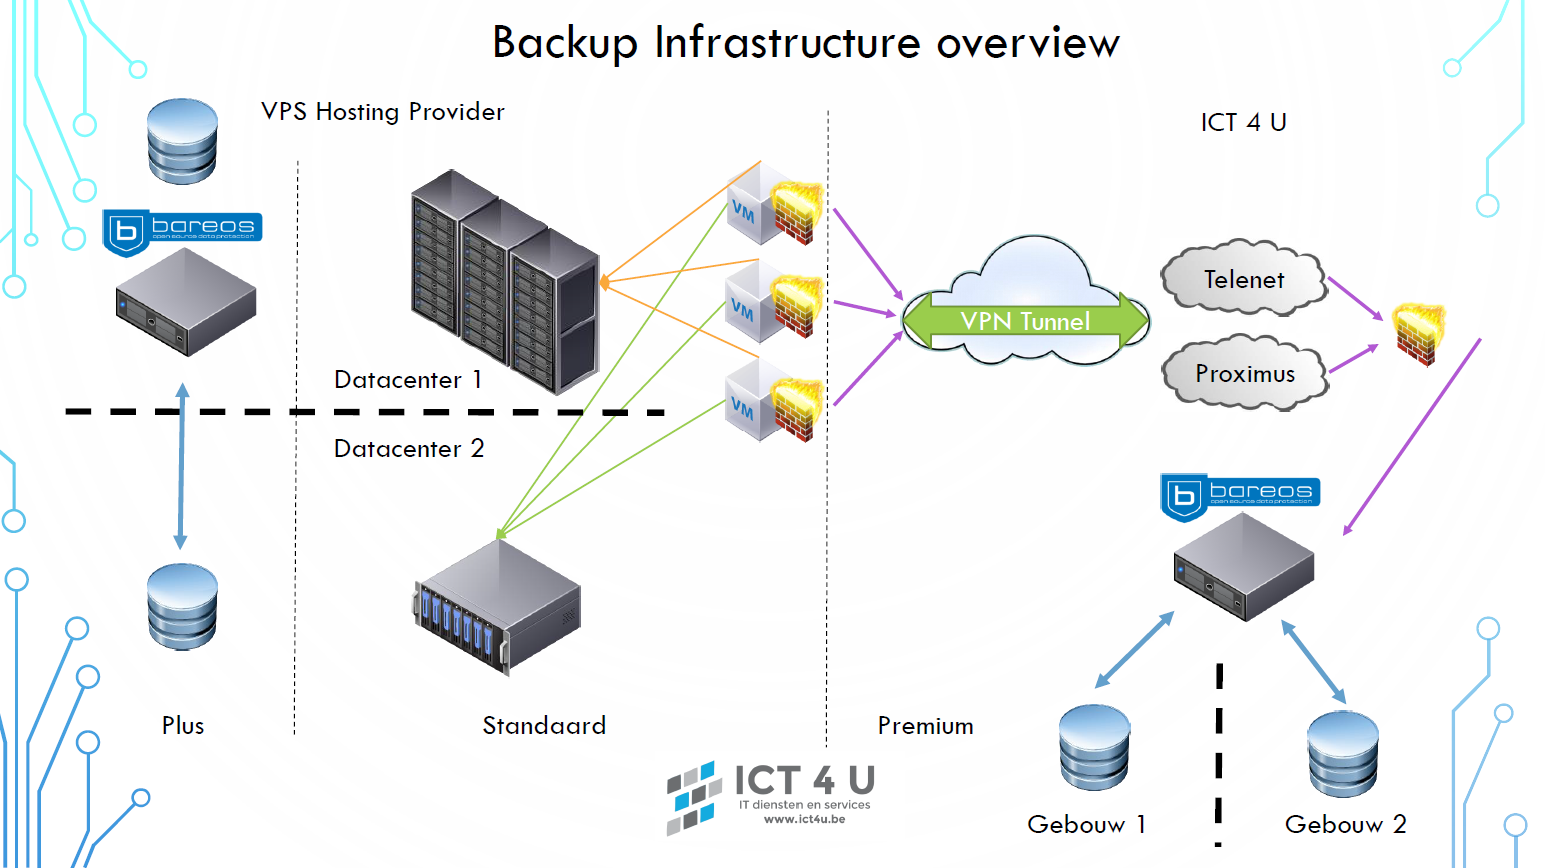 ICT4U Backup Infrastructure